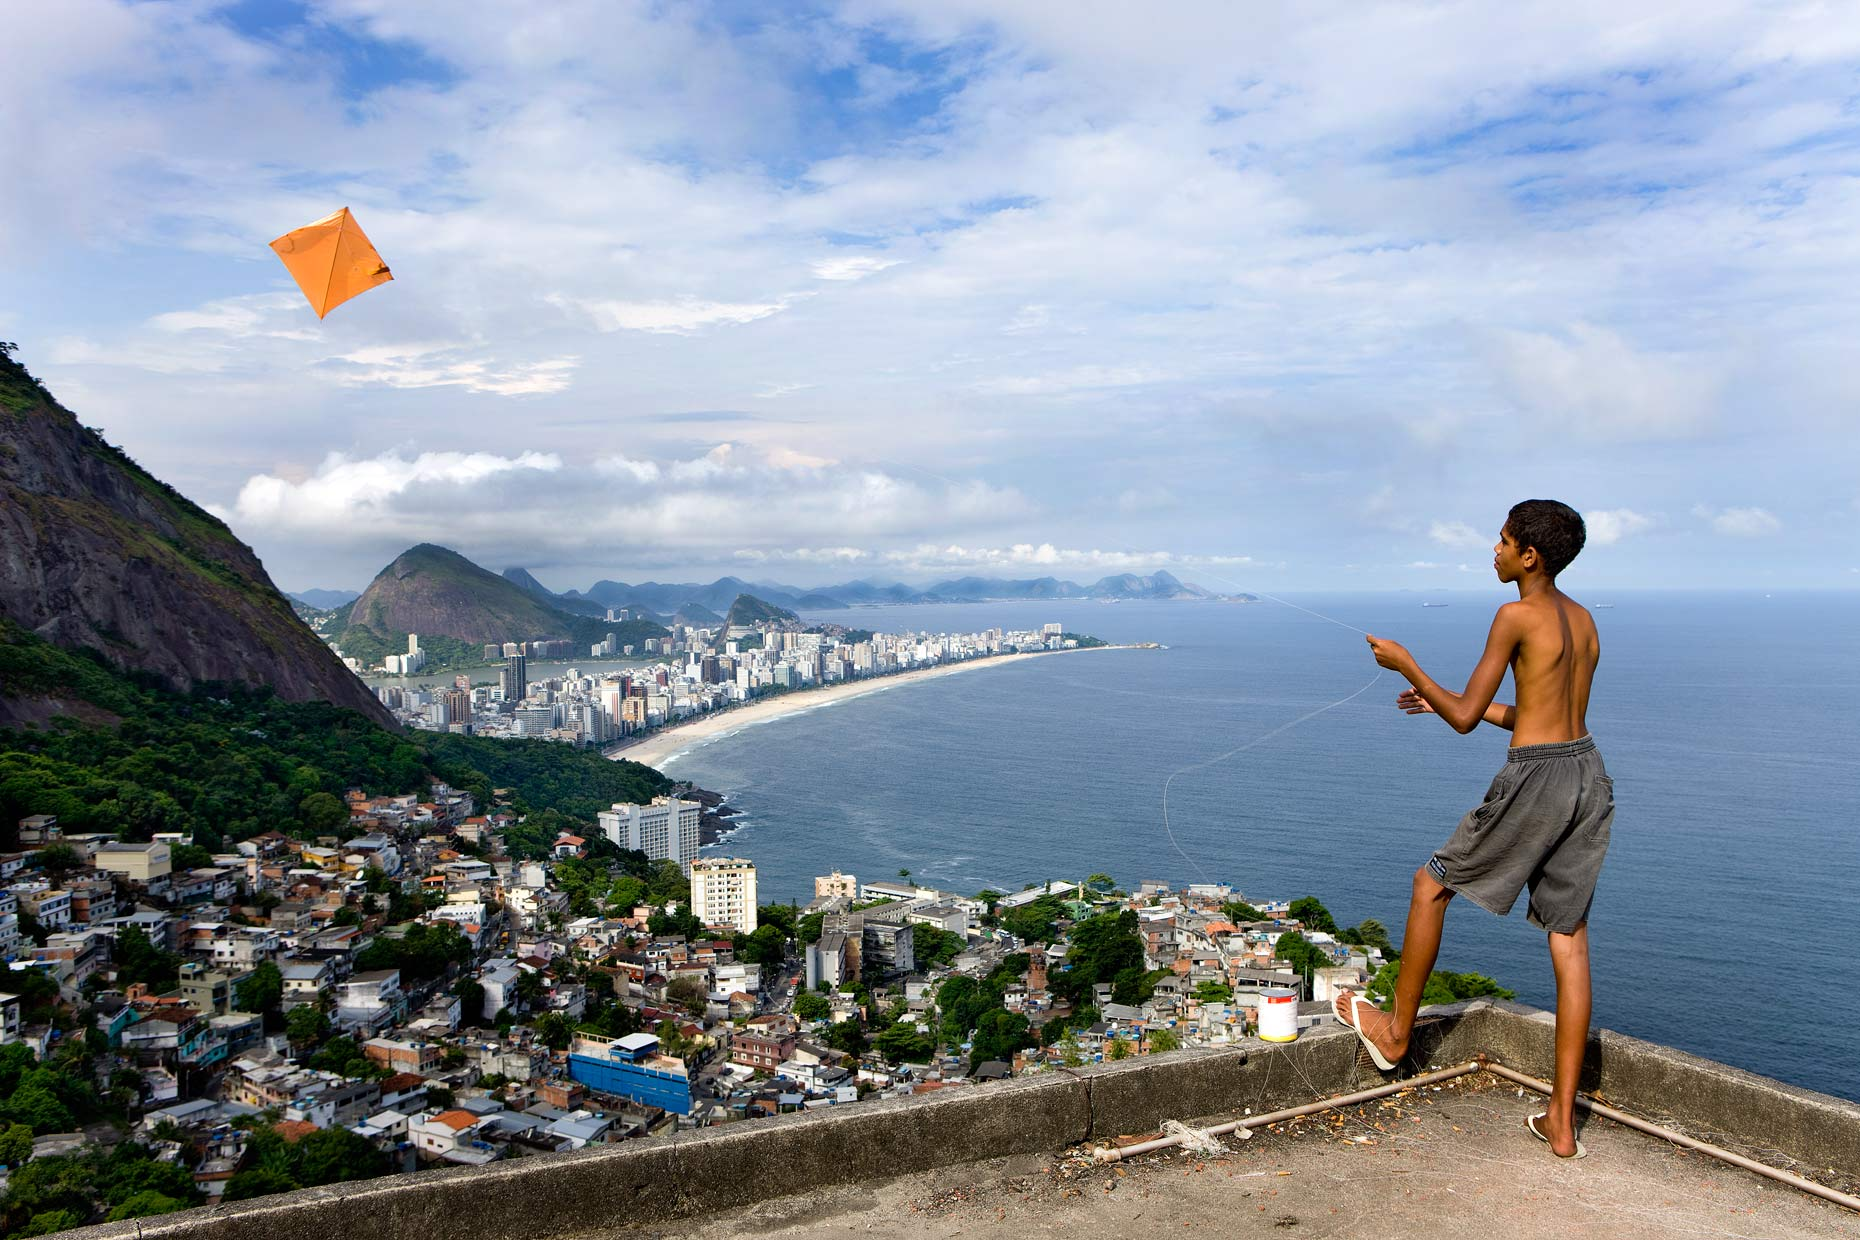 vidigal-kite-flying.jpg